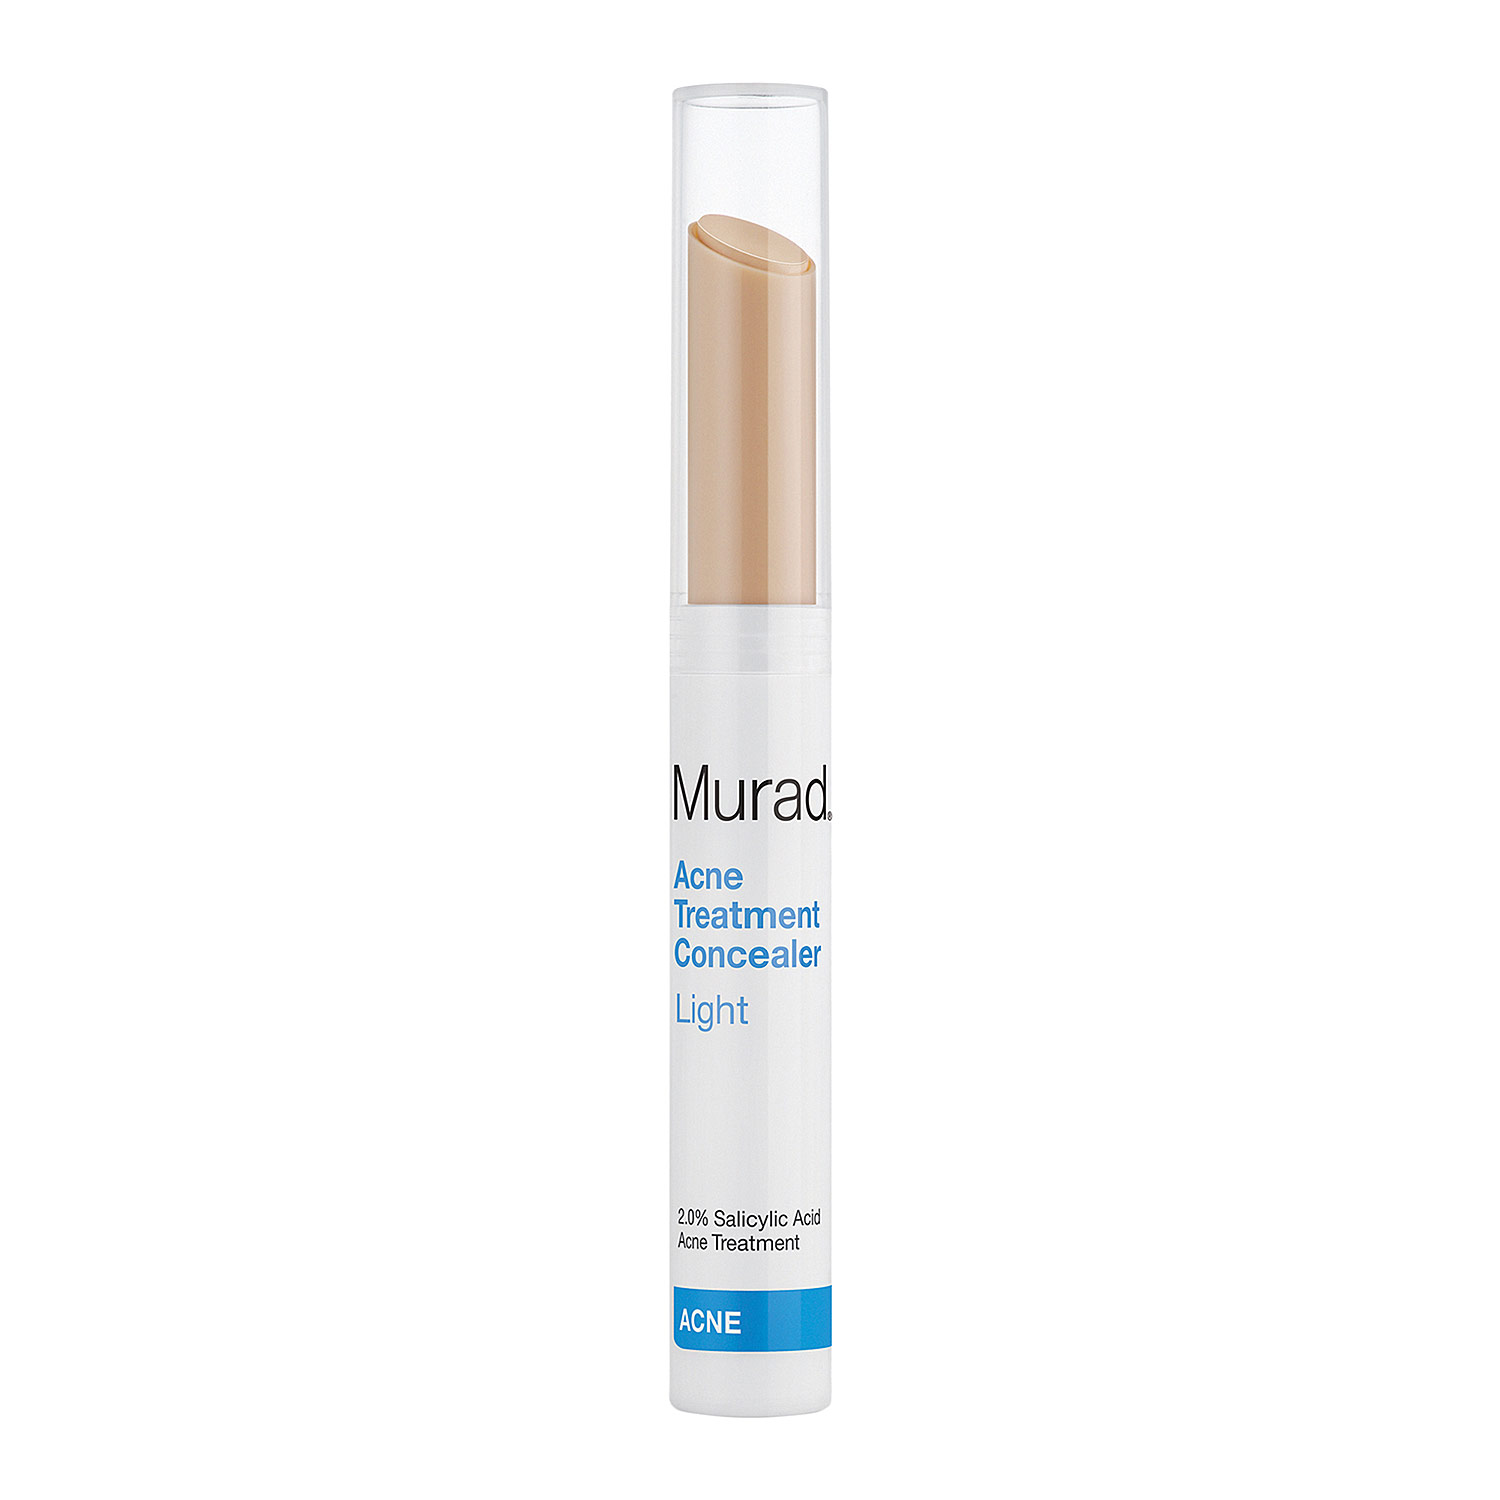 Murad concealer stick is one of the best concealers for acne prone skin